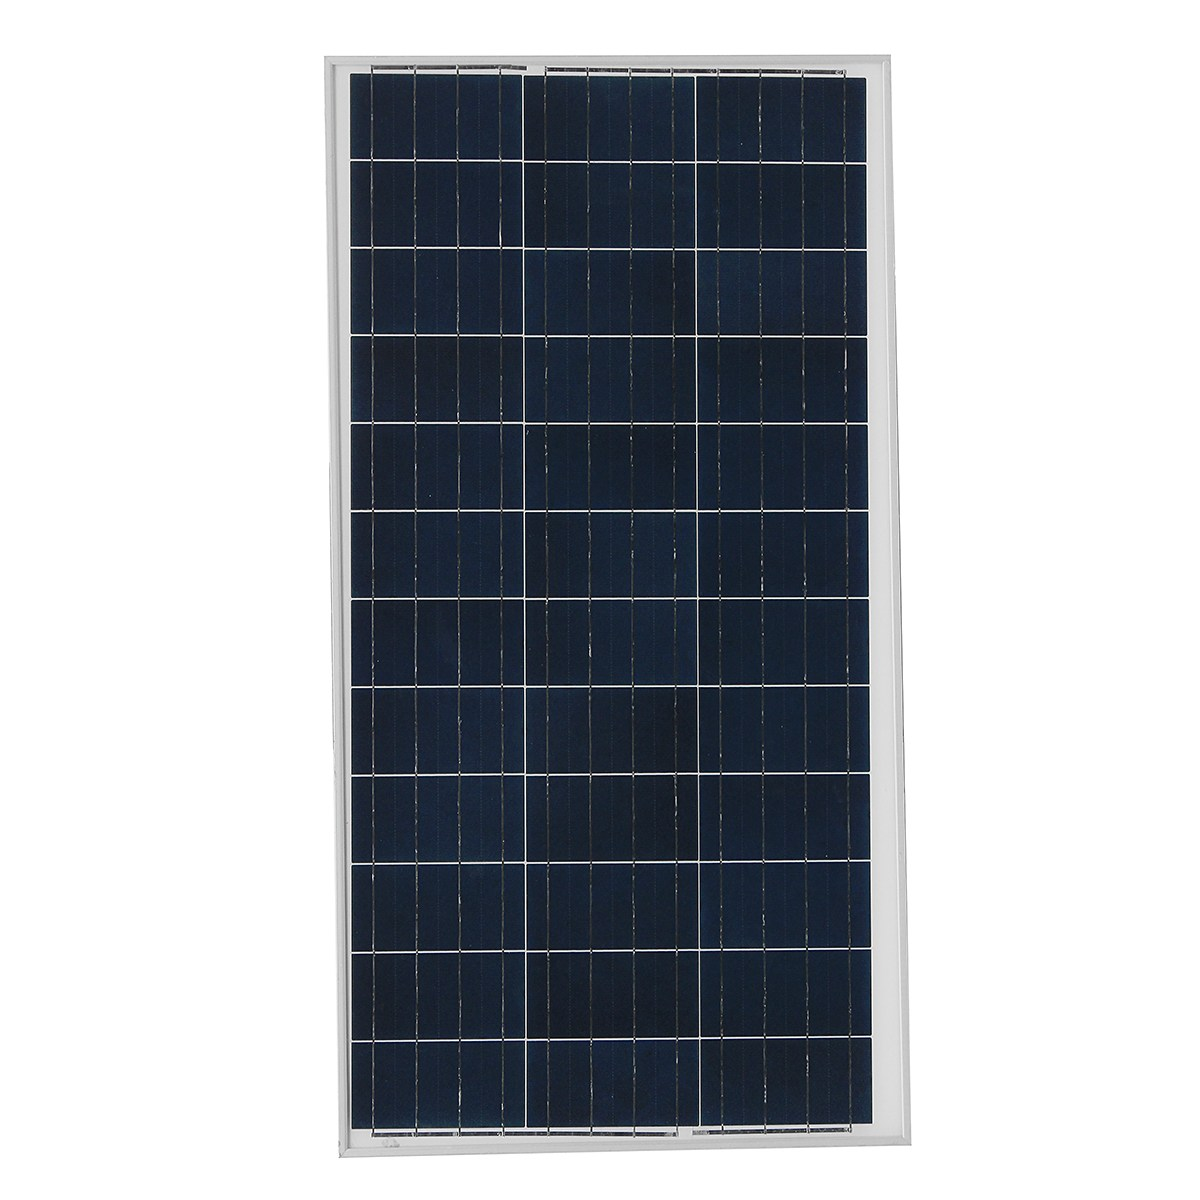 LEORY 70w 18v Polycrystalline Silicon Solar Panel With Glass Bearing Plate High Conversion Efficiency Suitable For Car Battery 12v 30w solar panel polycrystalline semi flexible solar battery for car boat emergency lights solar systems solar module